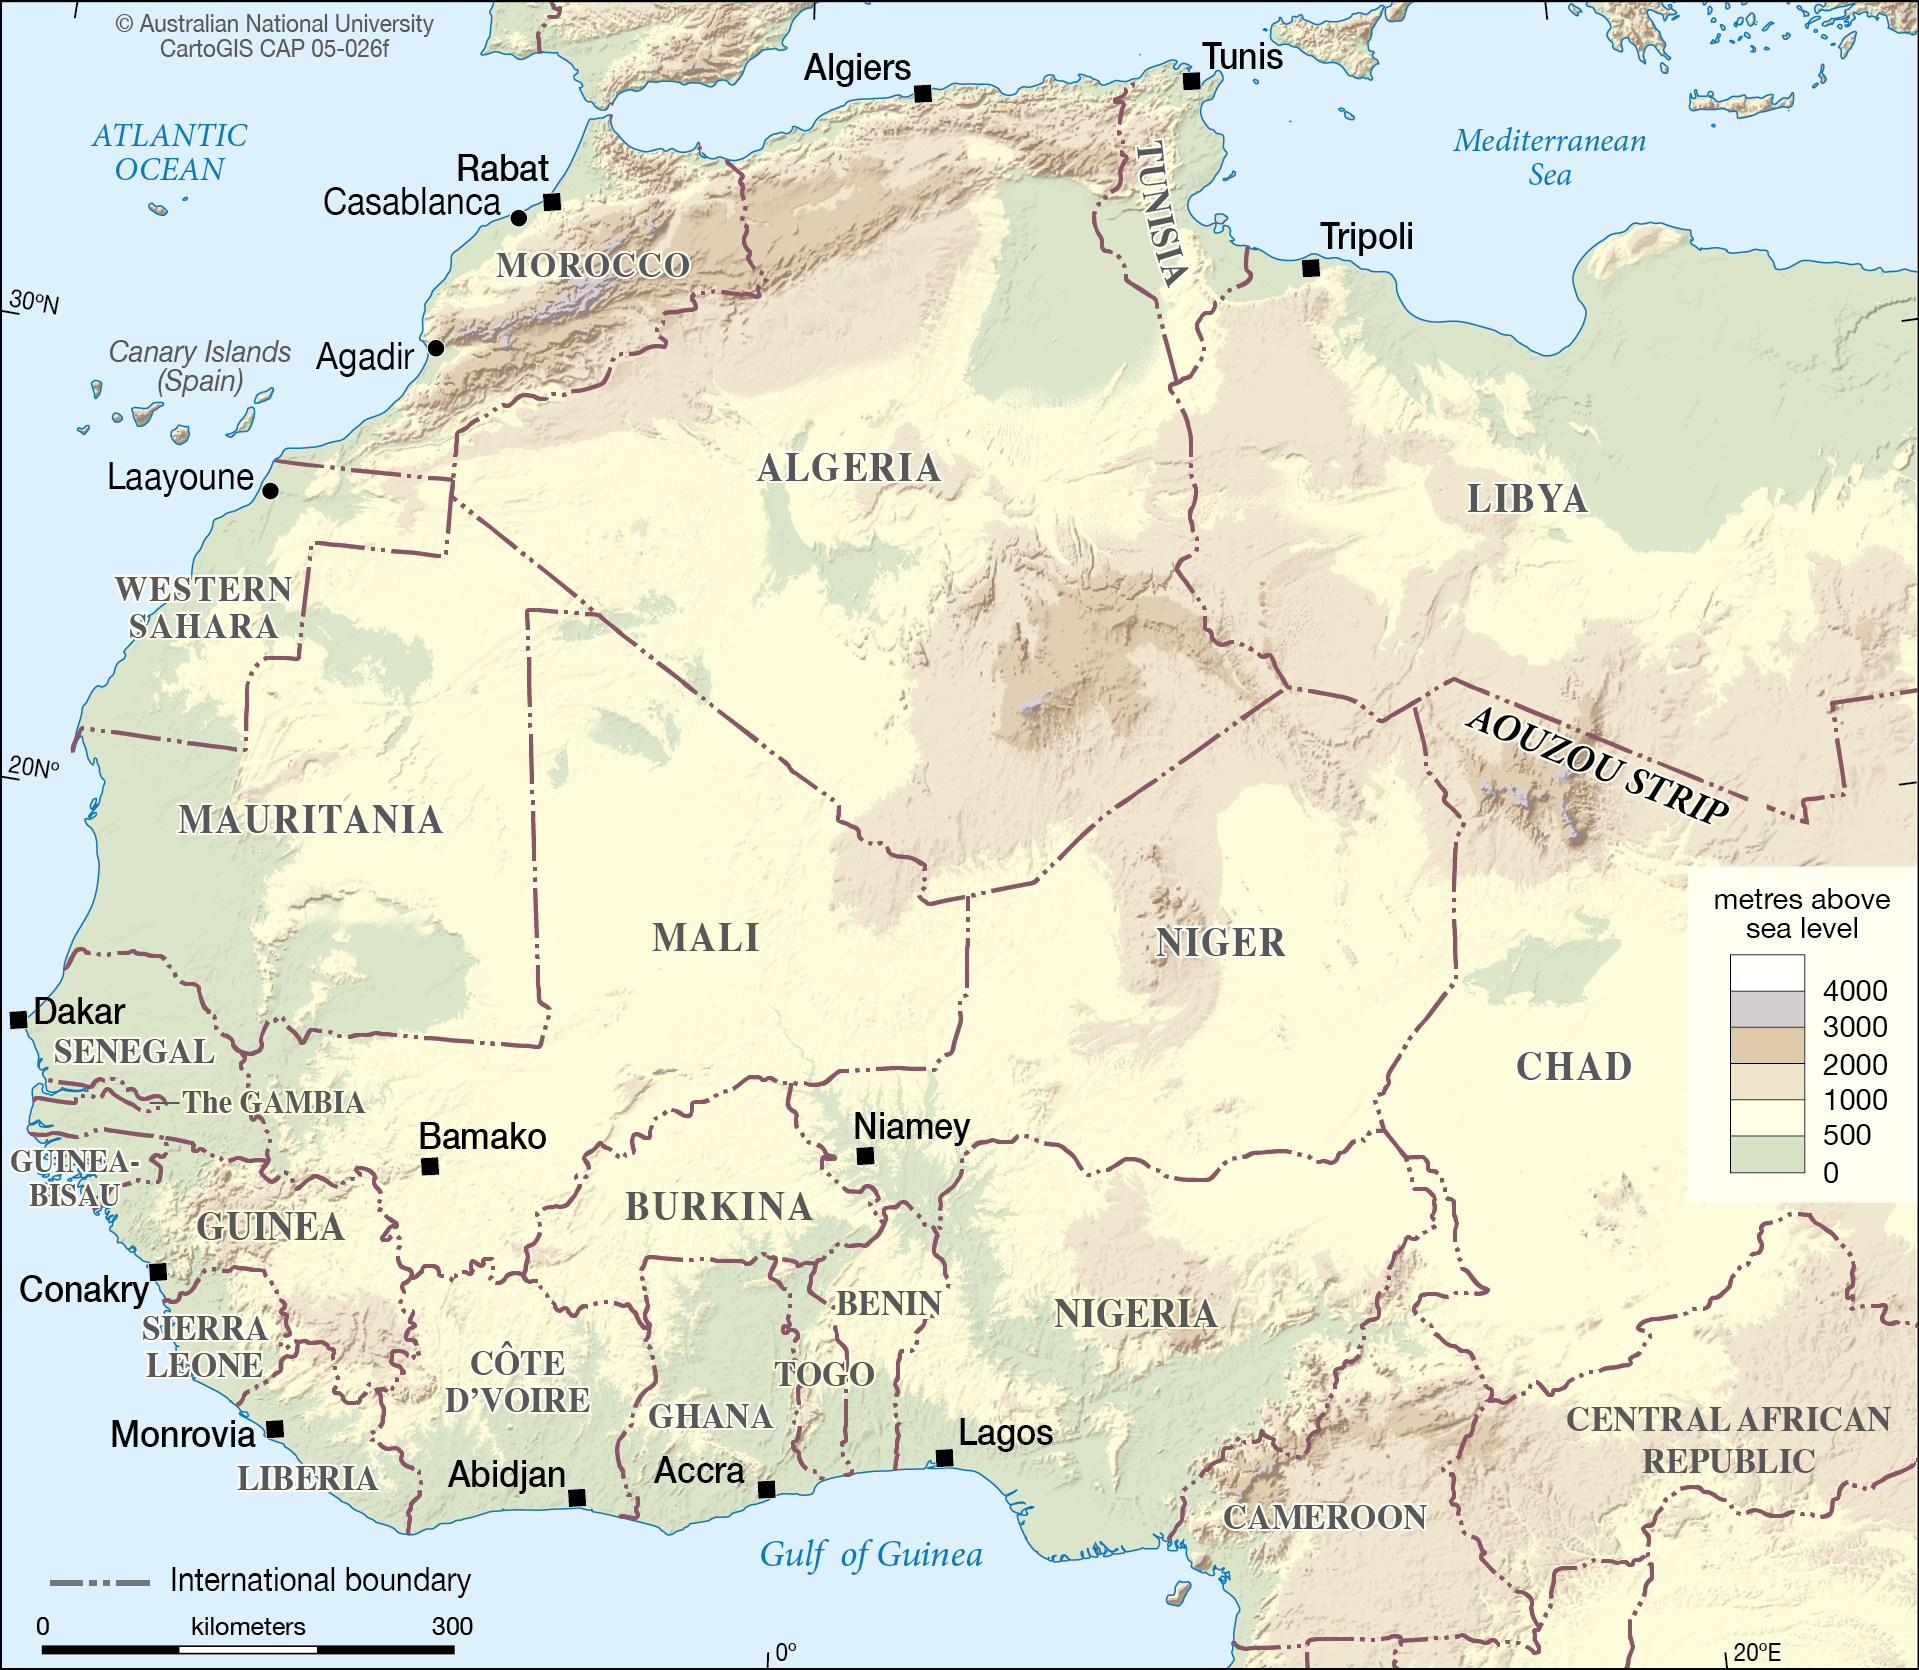 Northern Africa - CartoGIS Services Maps Online - ANU